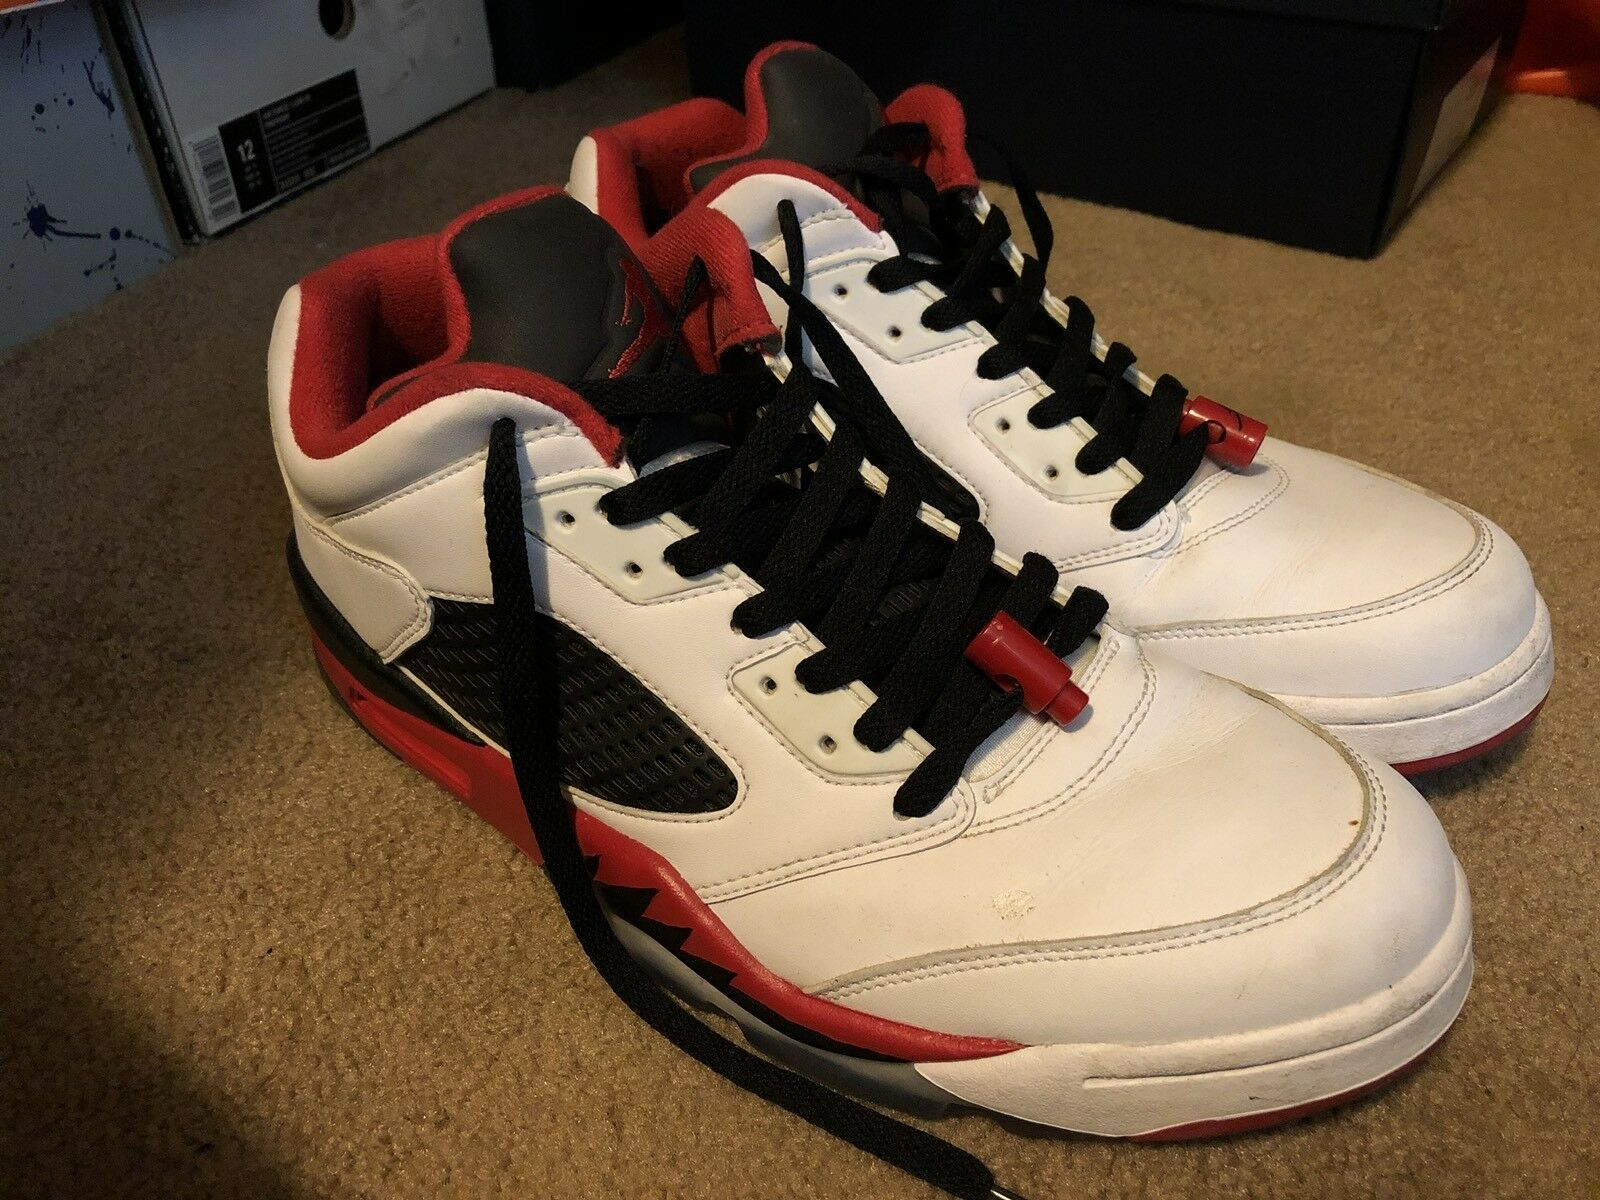 NIKE AIR JORDAN 5 V FIRE RED BLACK BRED WHITE LOW BASKETBALL